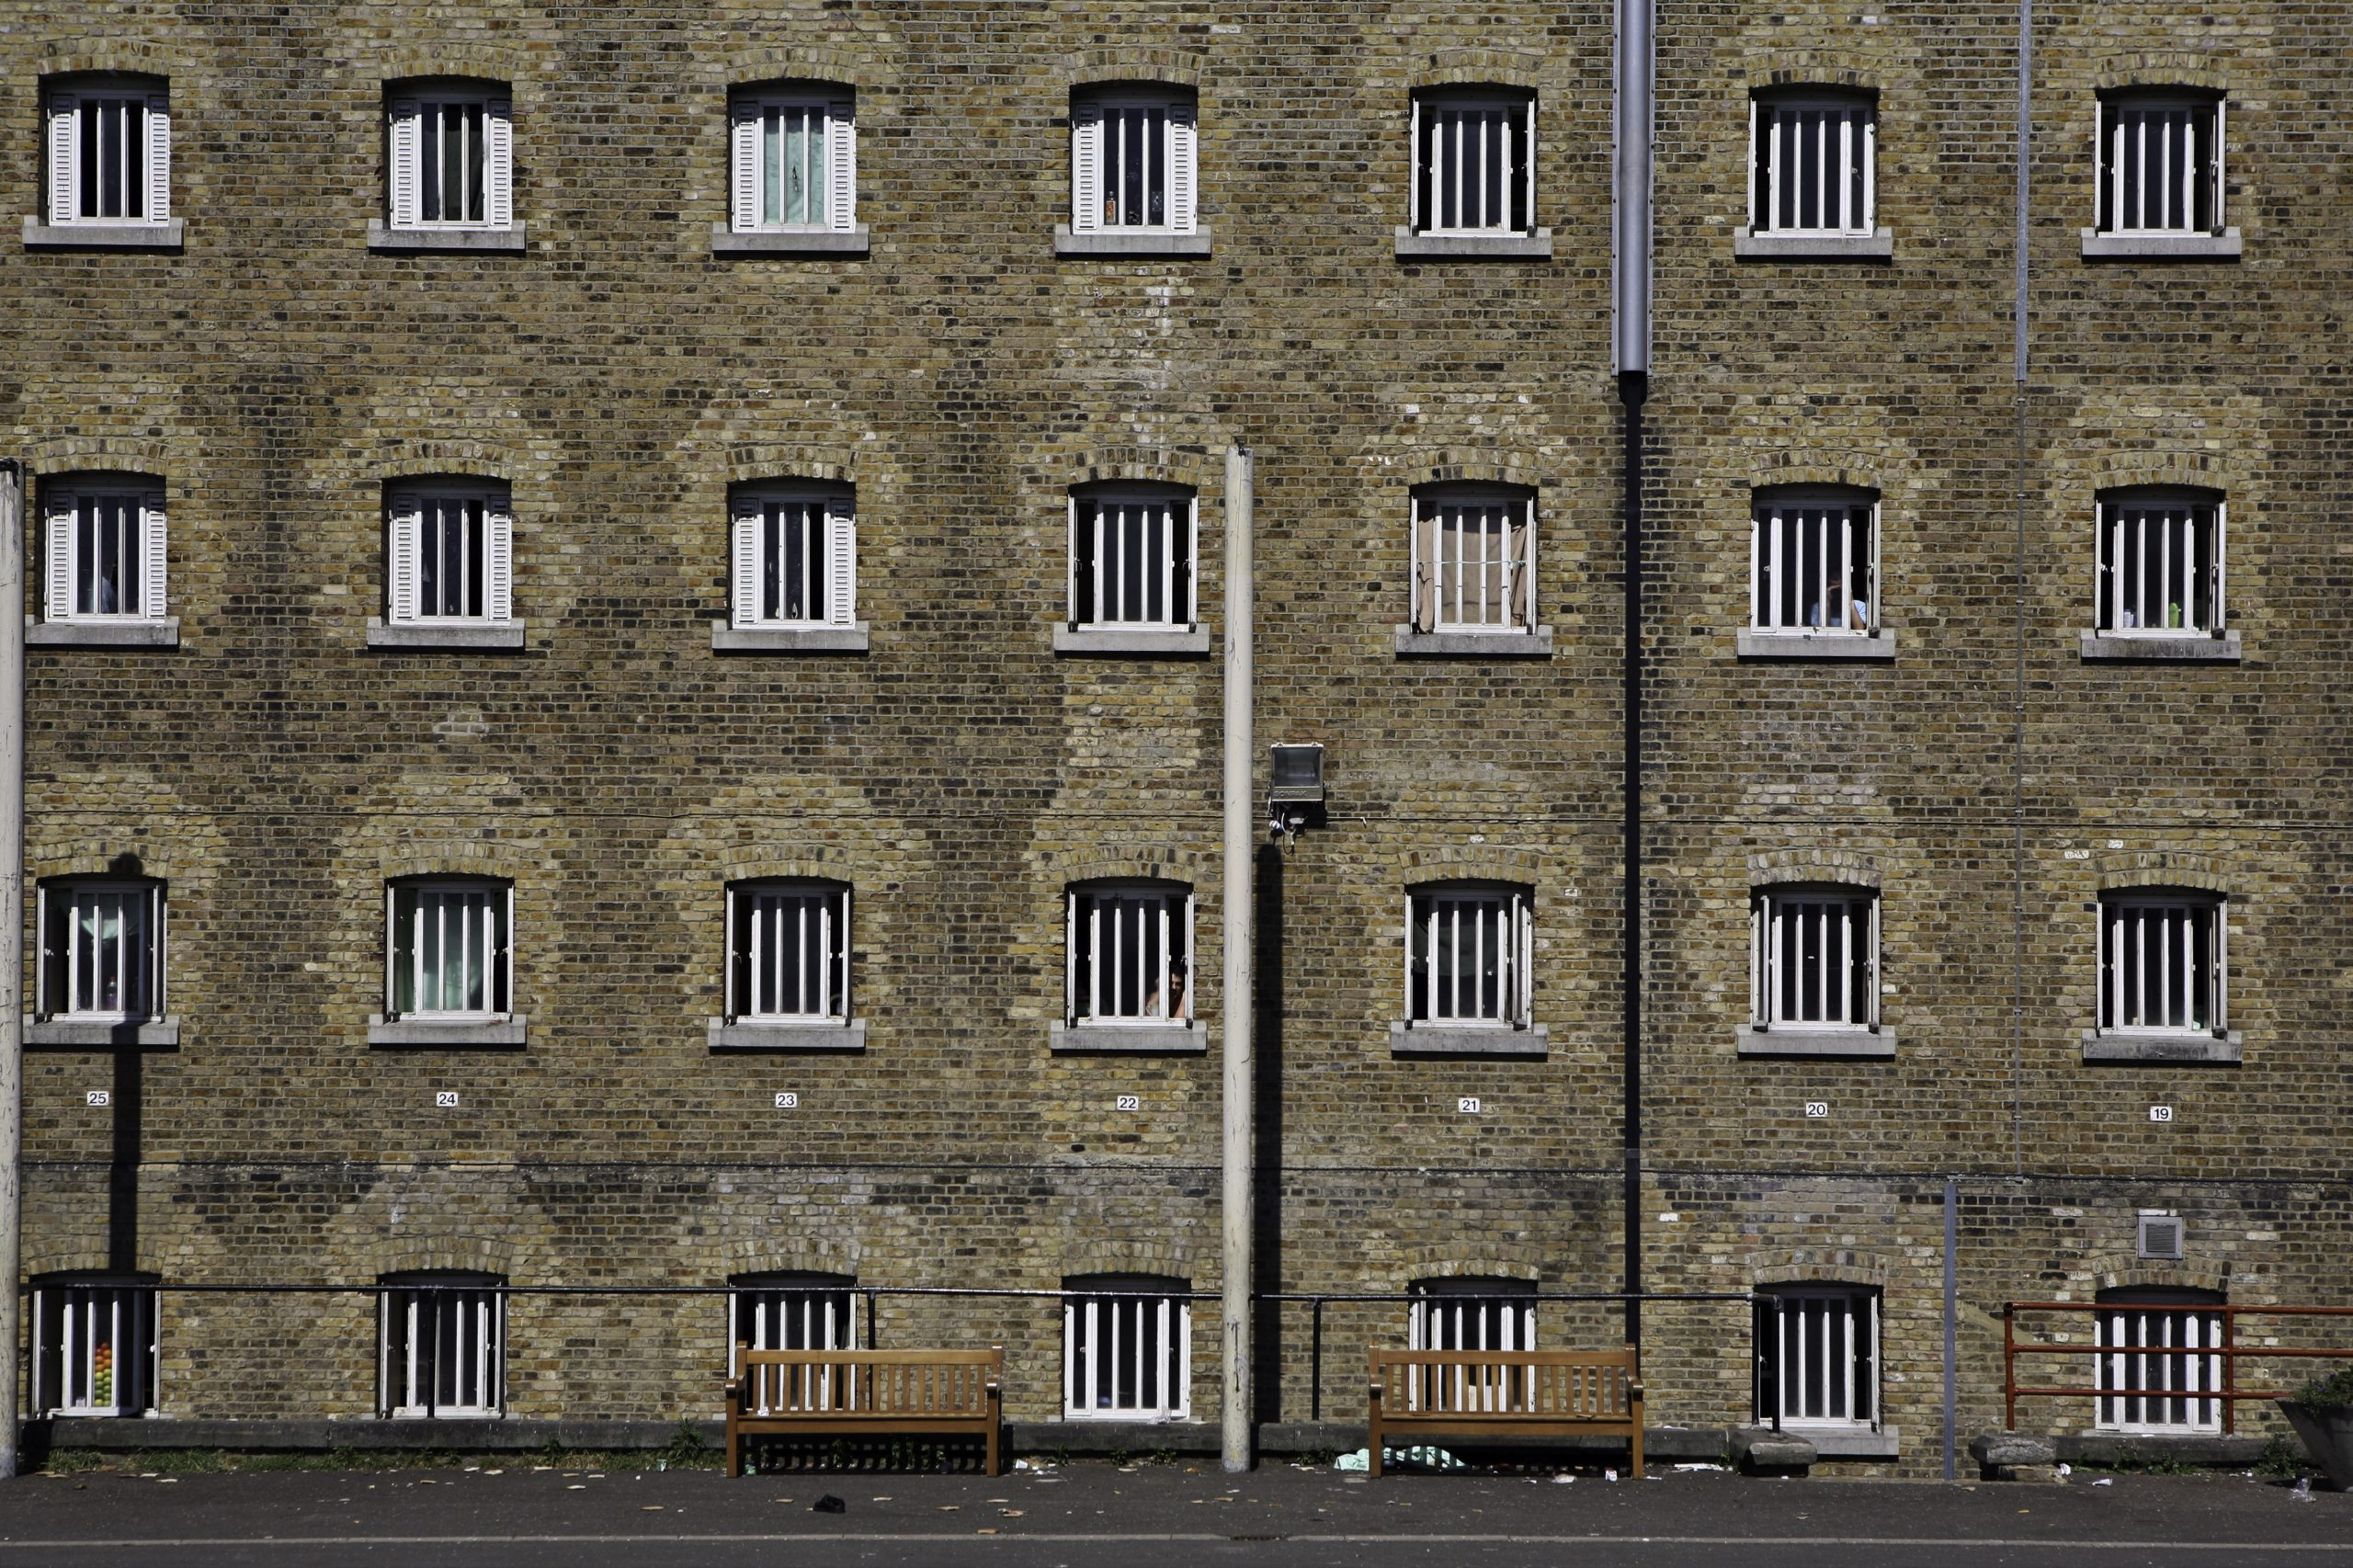 The failure of UK prisons and the role of civil society